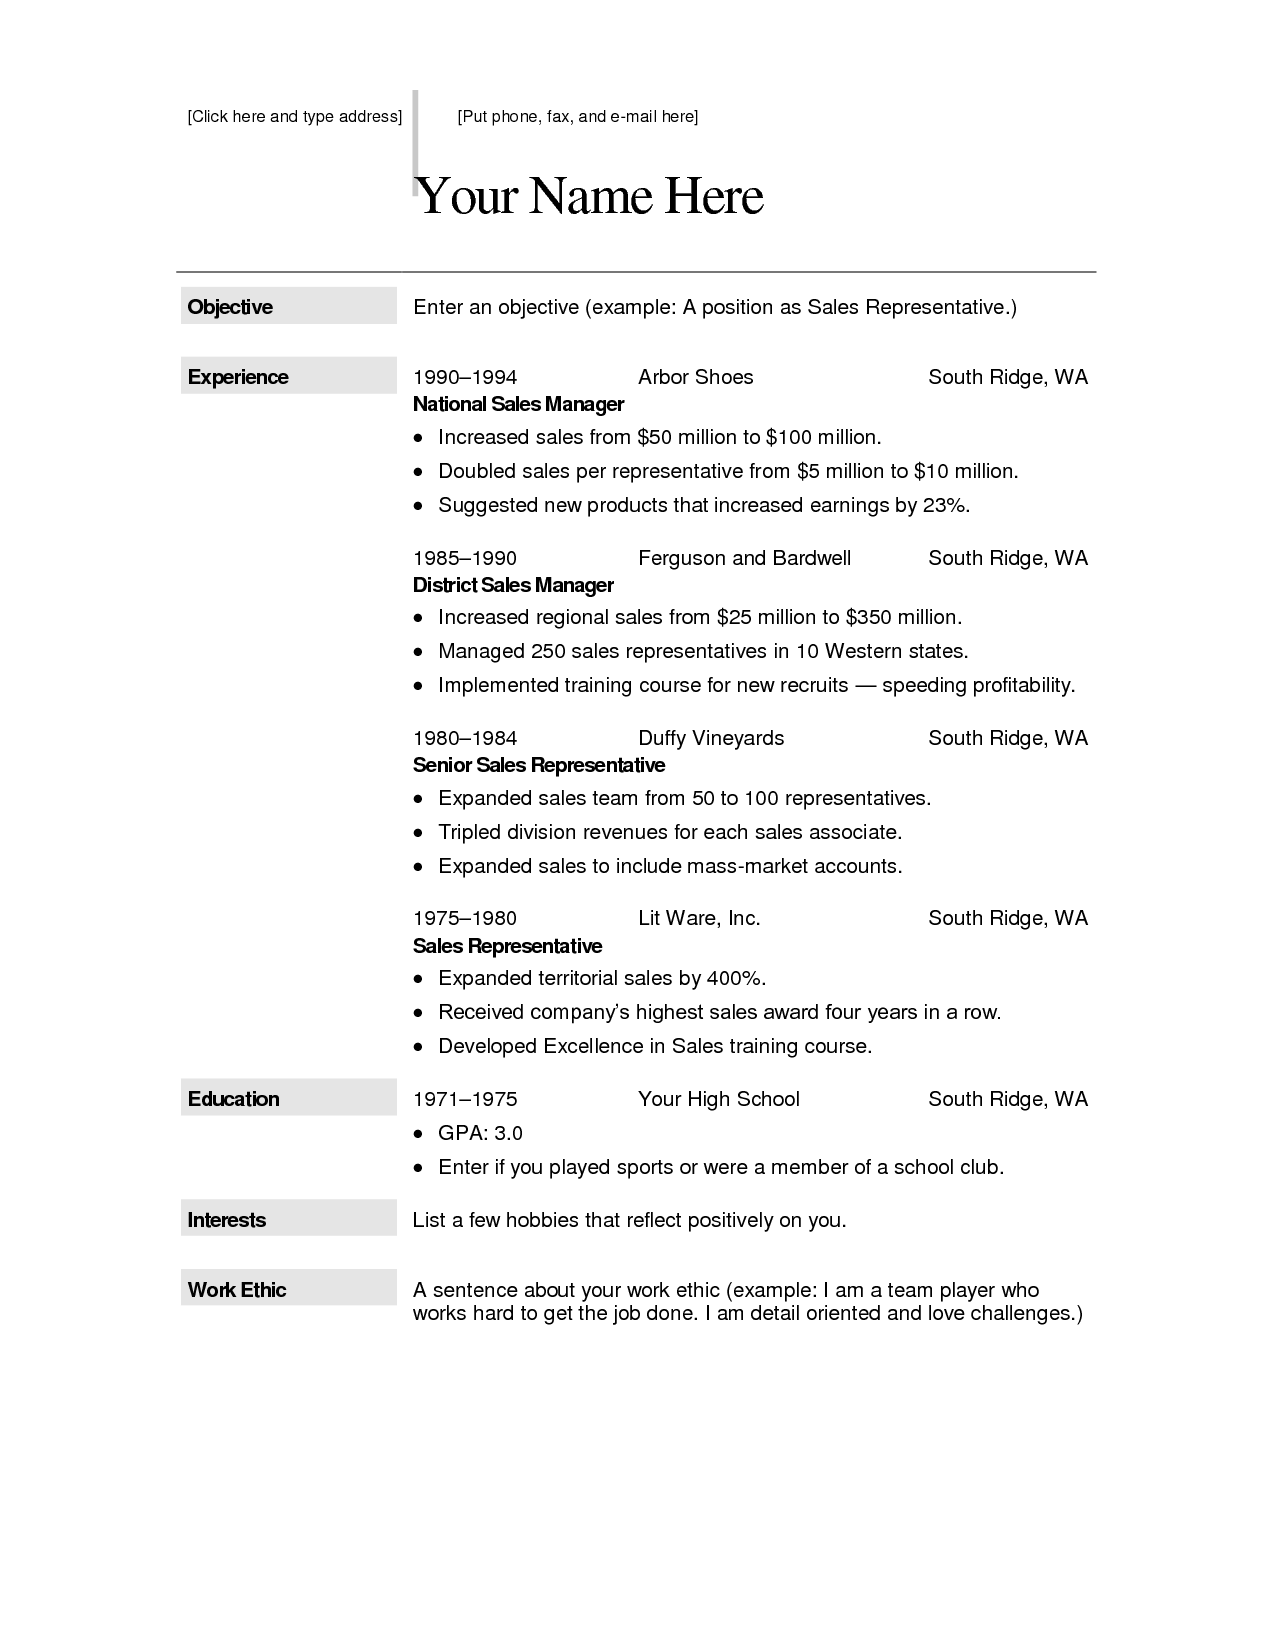 free resume templates combination resume template word combination 34025f26ebf541b2ef9bf7f9408d04cf totally free resume builder and downloadhtml